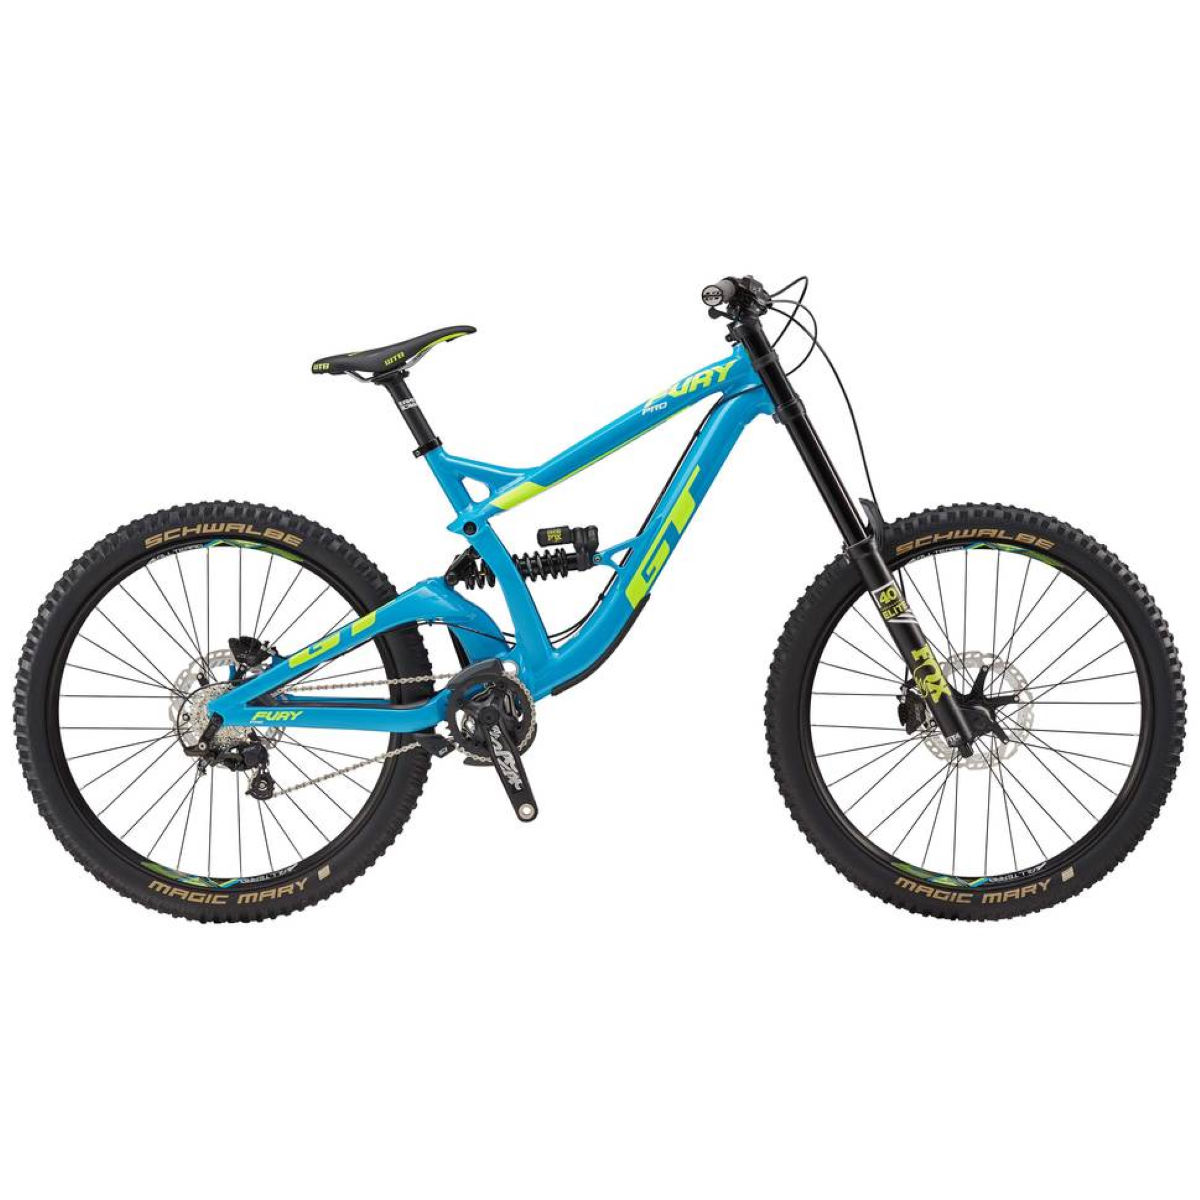 GT Fury Pro (2017) Mountain Bike - S Stock Bike Cyan VTT tout suspendu